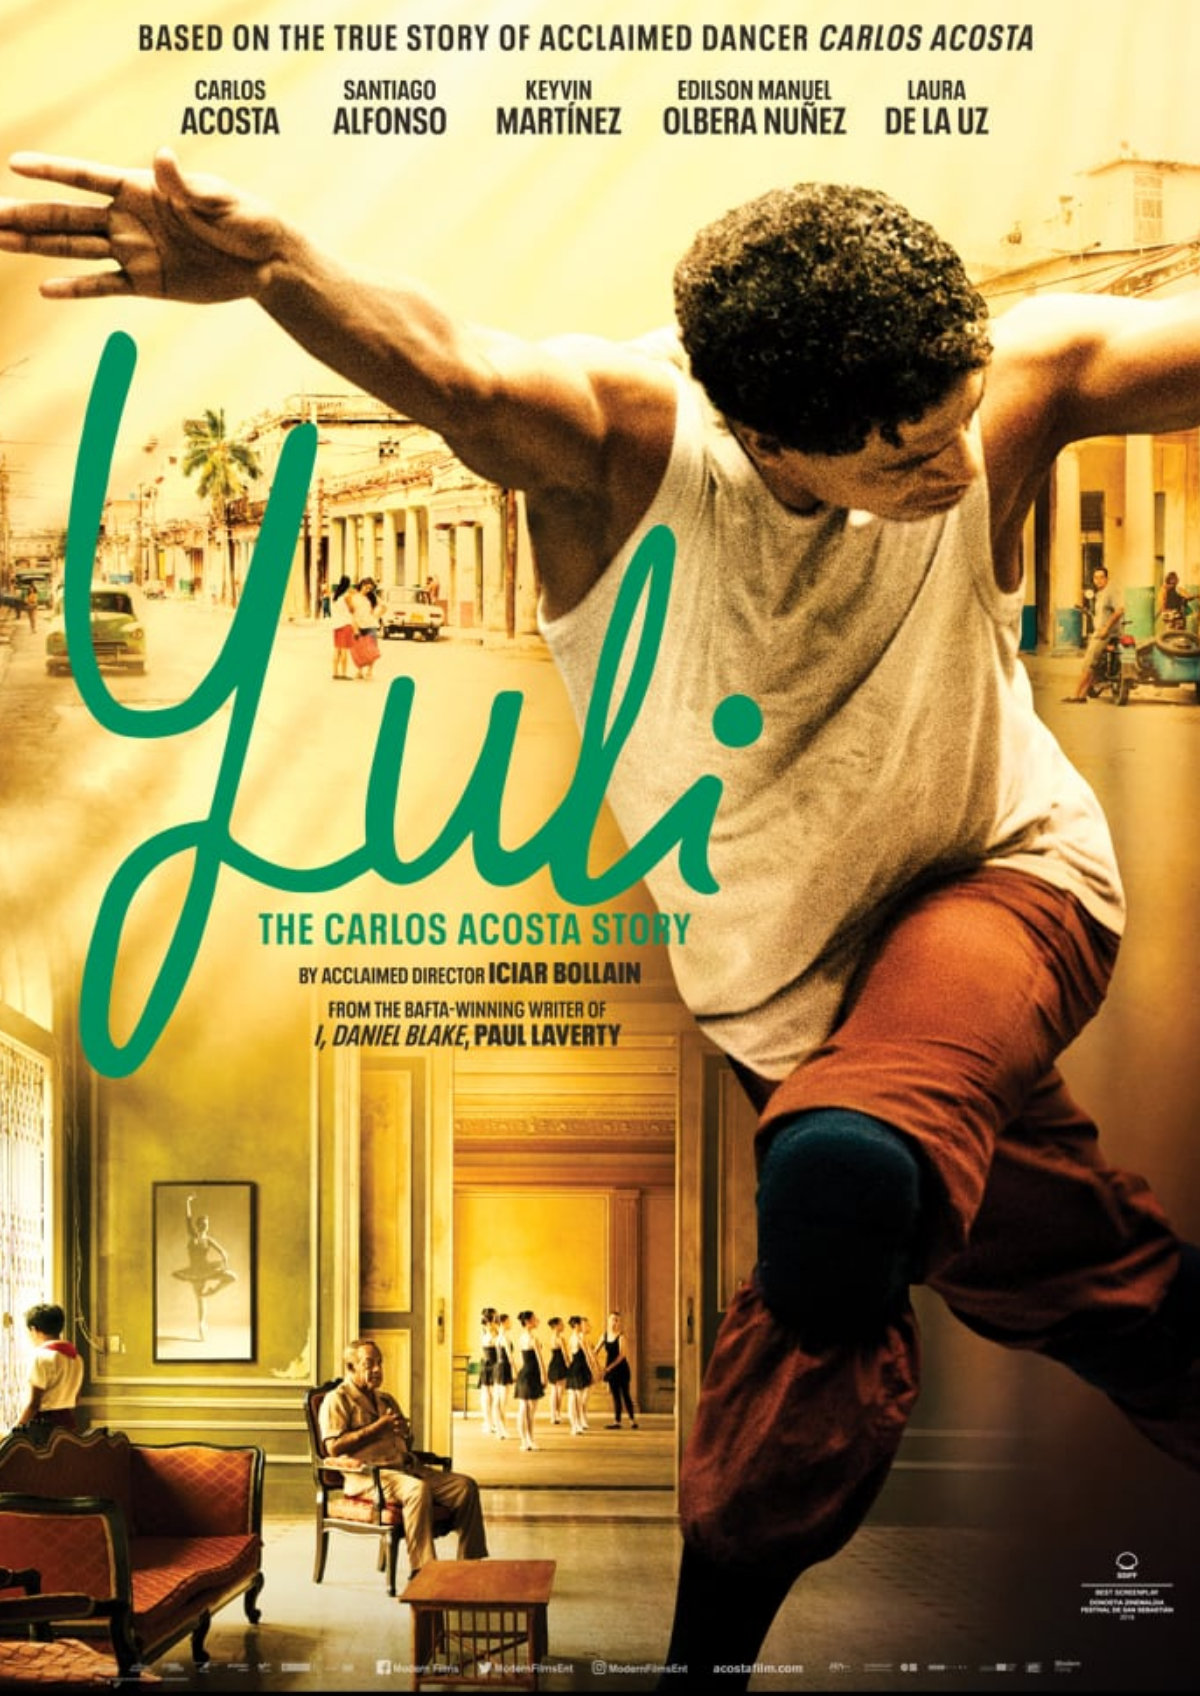 'Yuli: The Carlos Acosta Story' movie poster